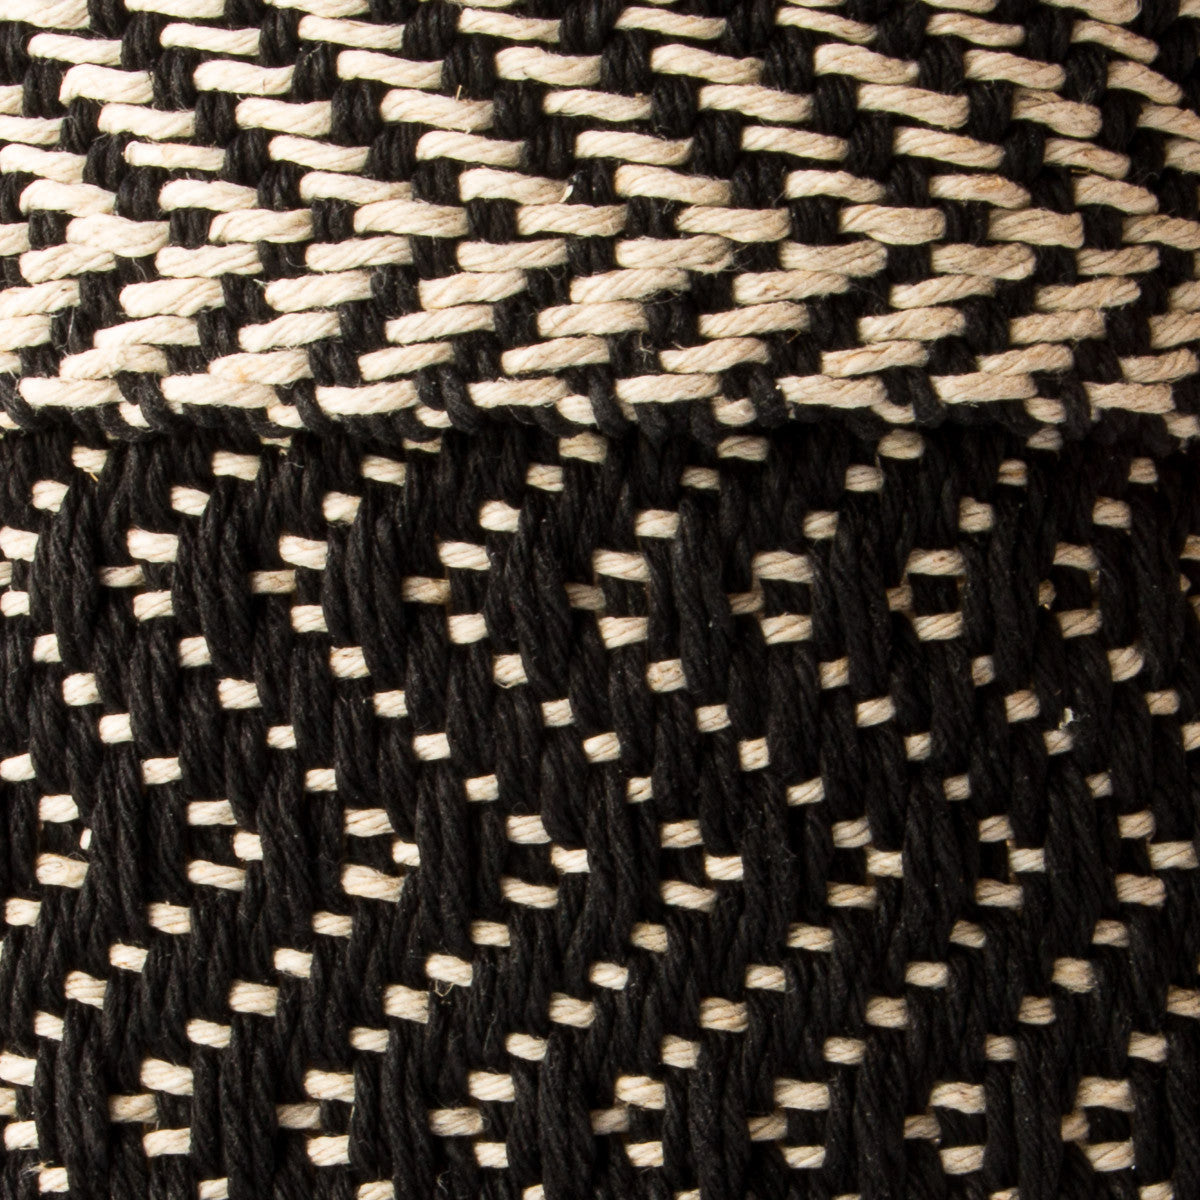 Handwoven Black and Ecru Hemp Pattern - Chic & Basta